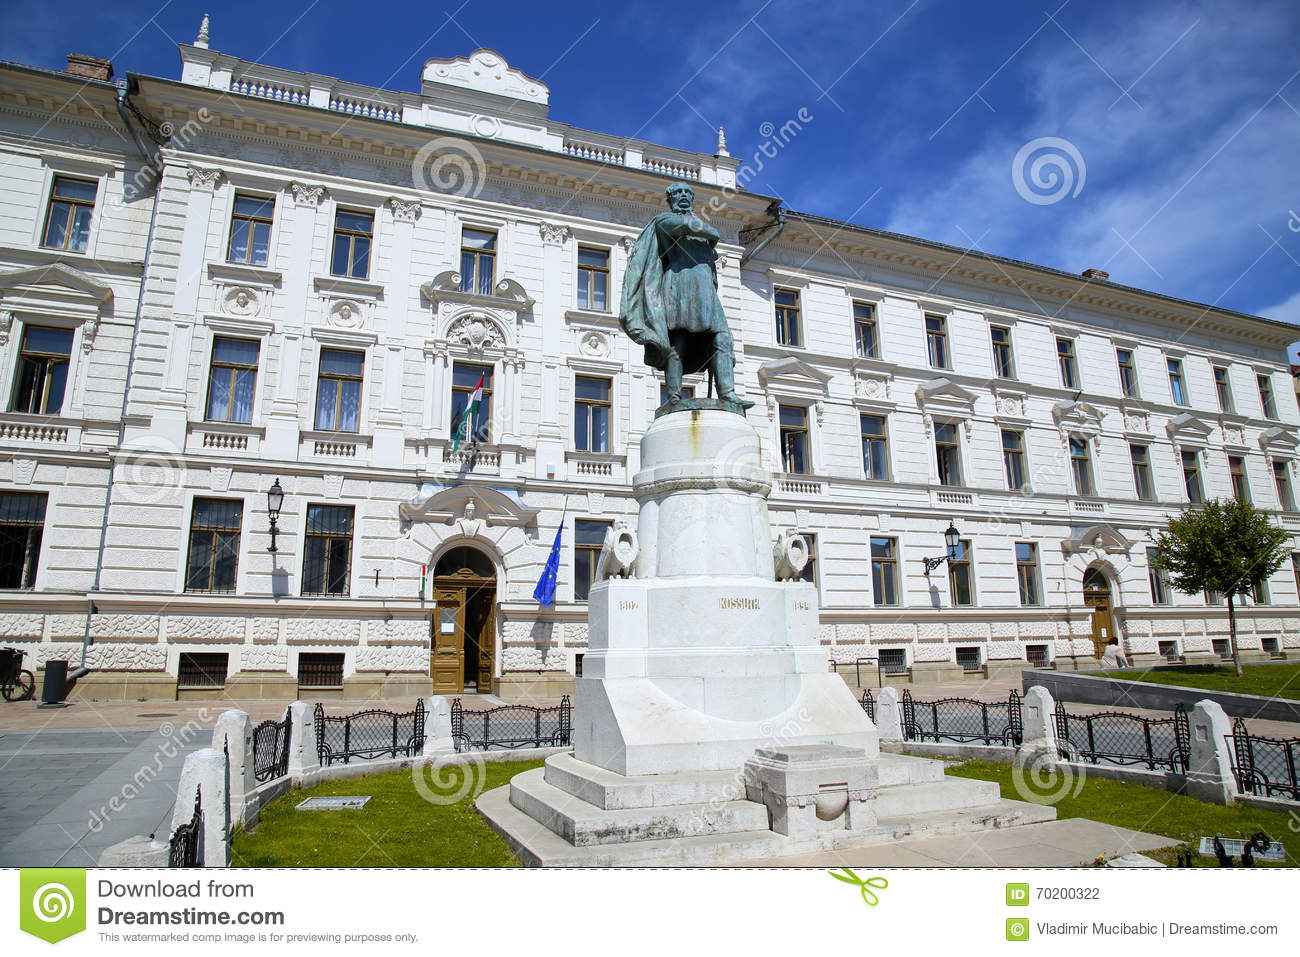 Statue Of Lajos Kossuth And Governmental Building In Pecs, Hunga.